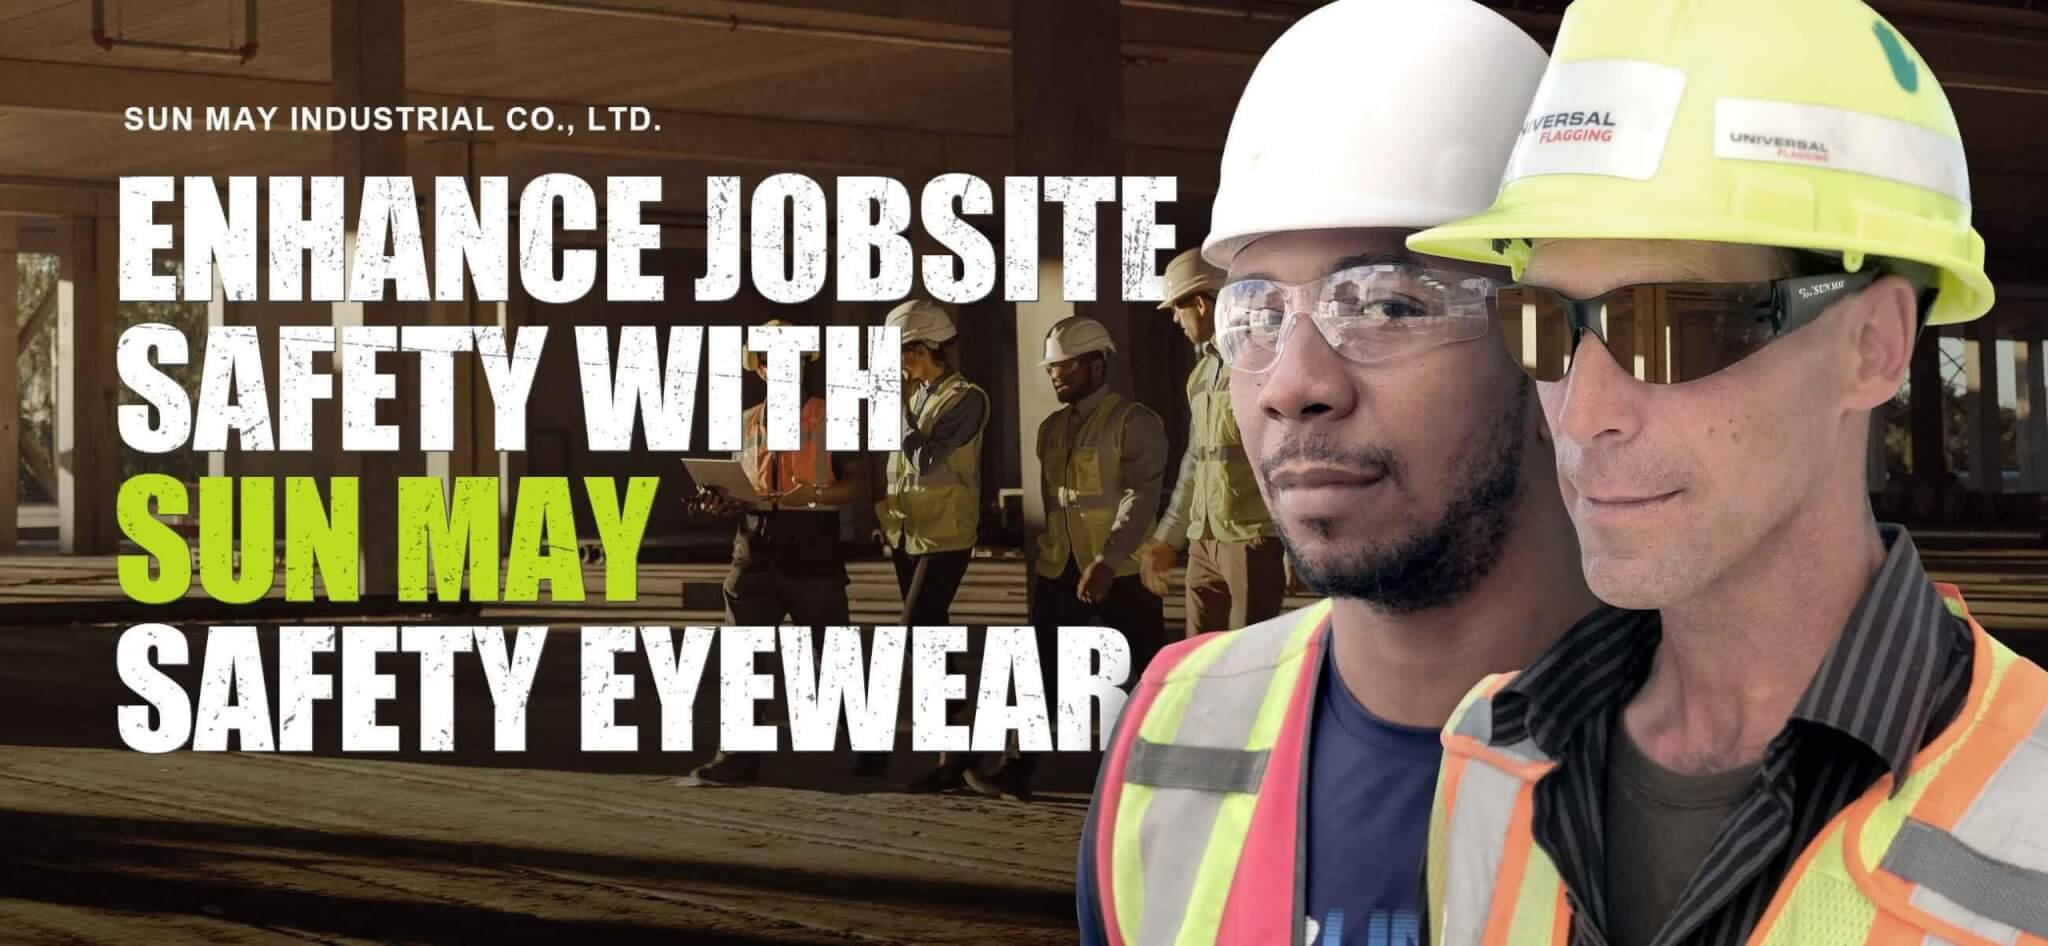 Sun May safety eyewear in construction site